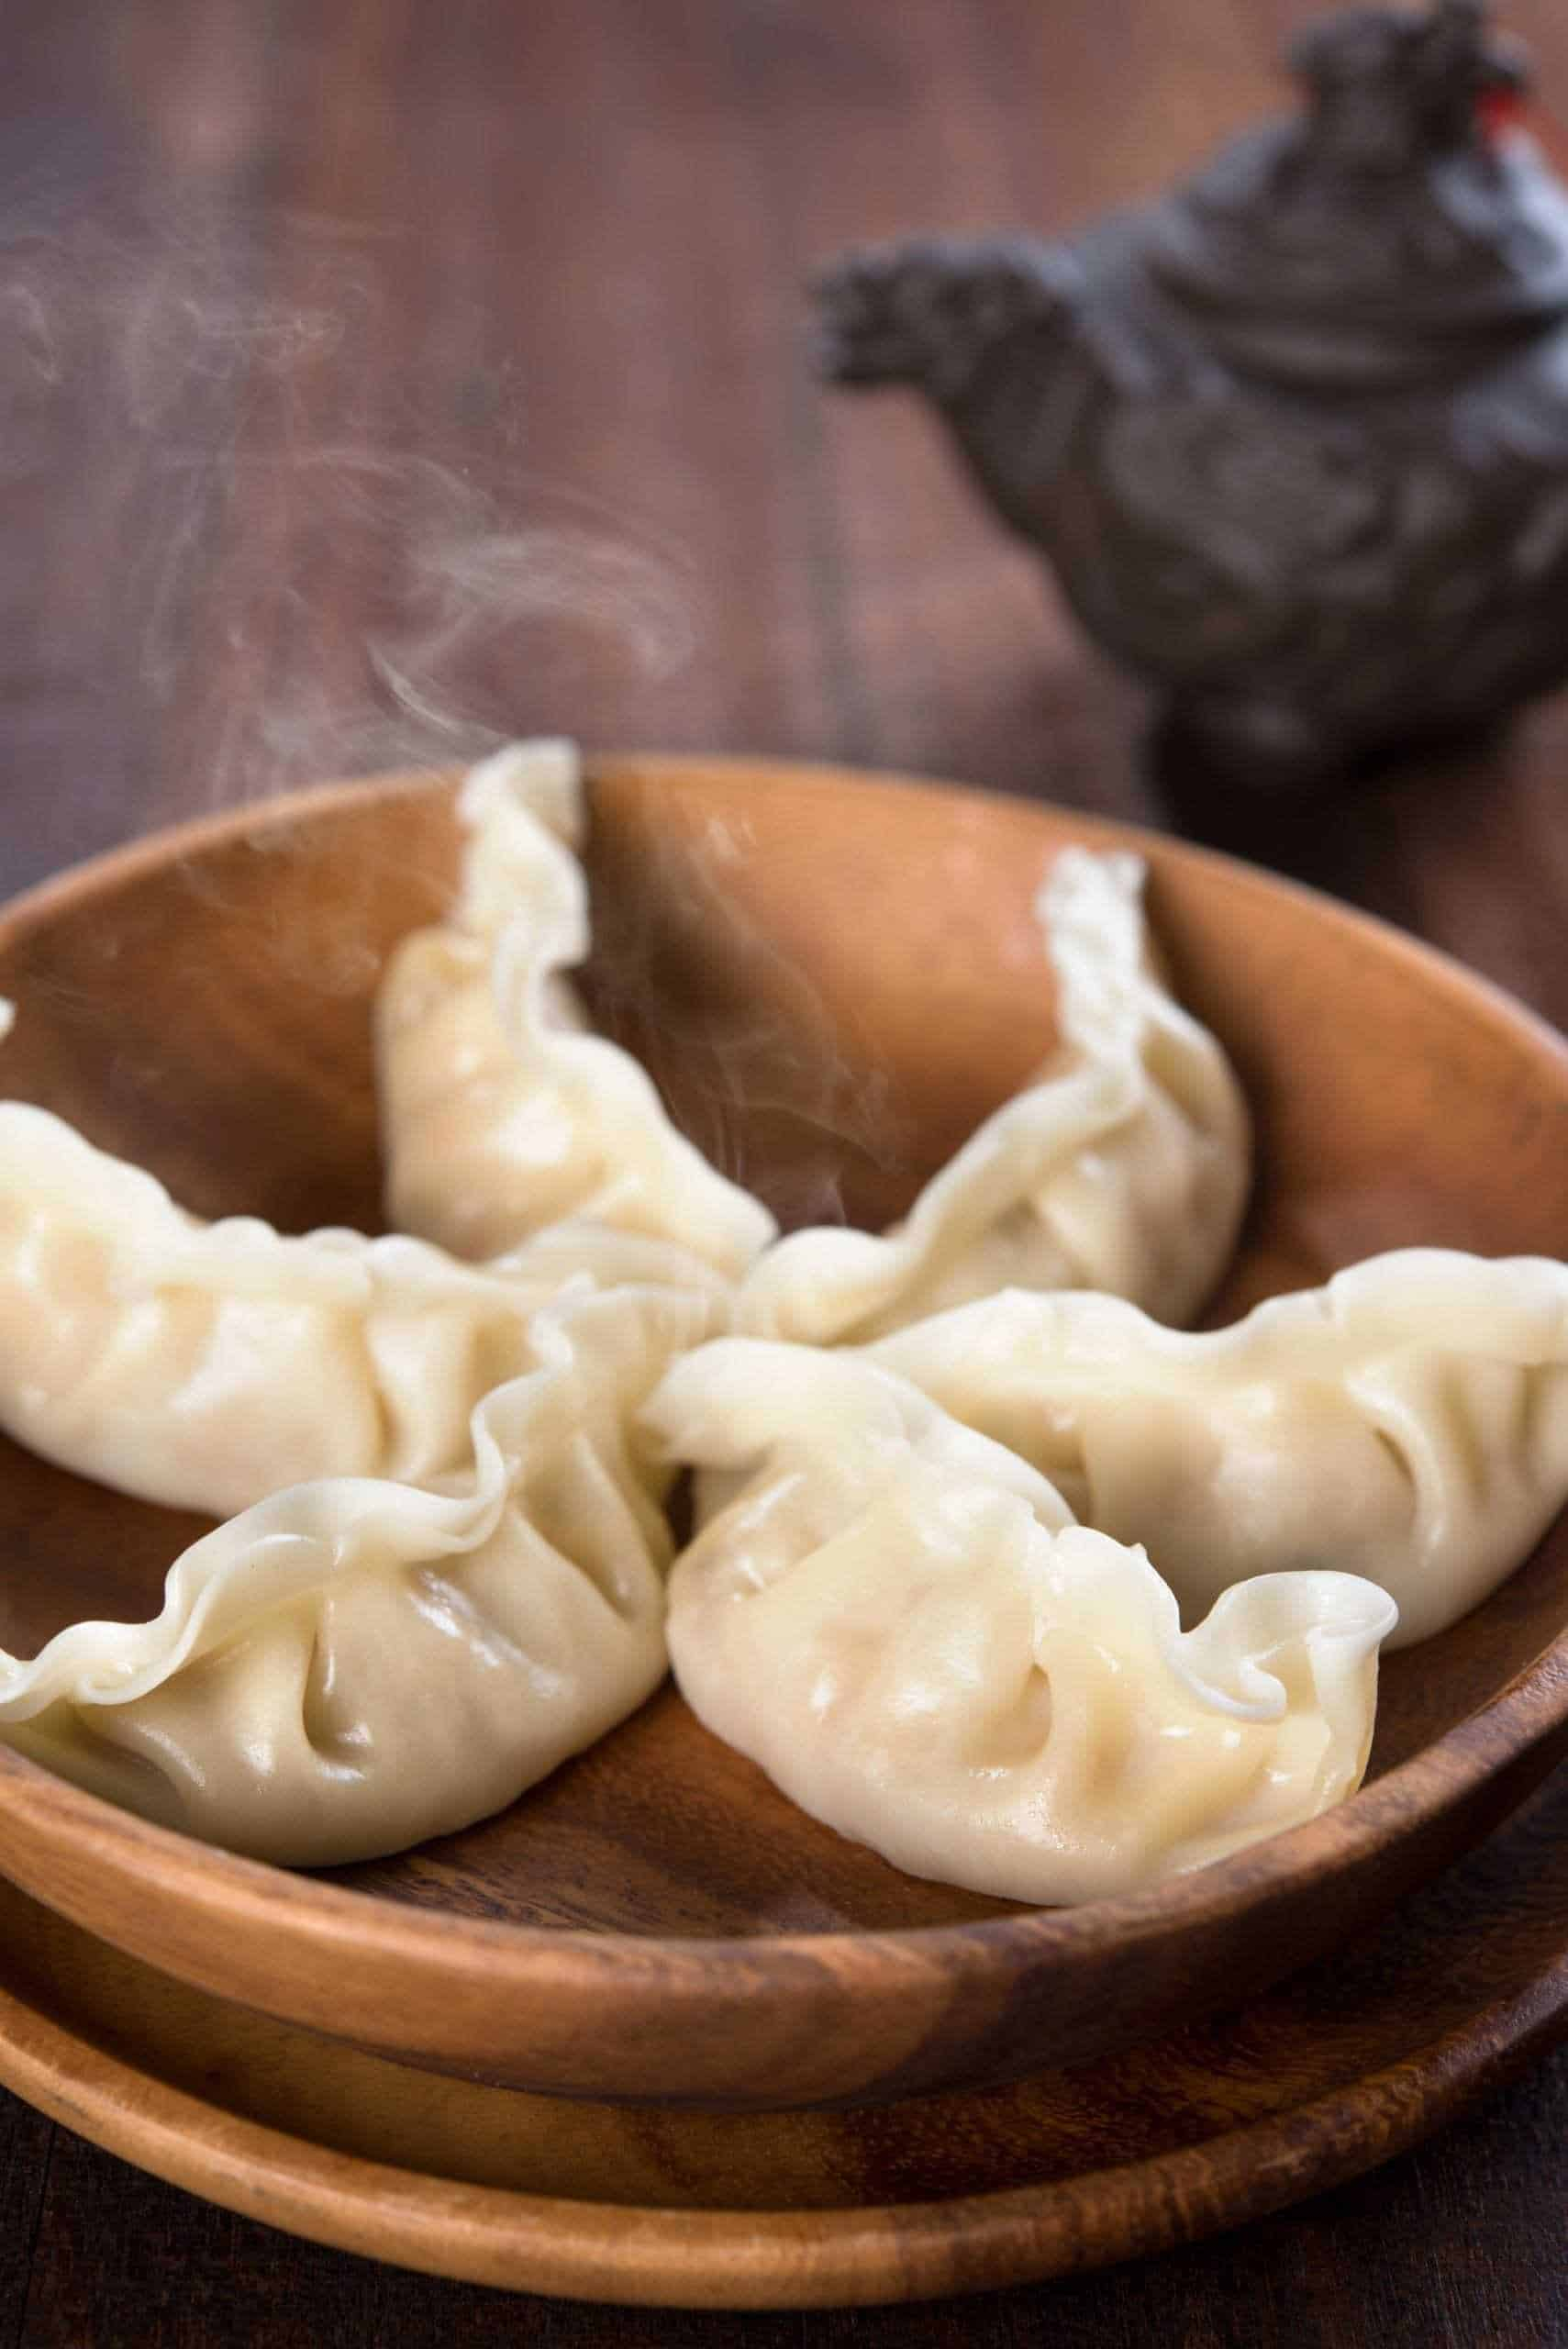 Can you recreate steamed dumplings in an air fryer?